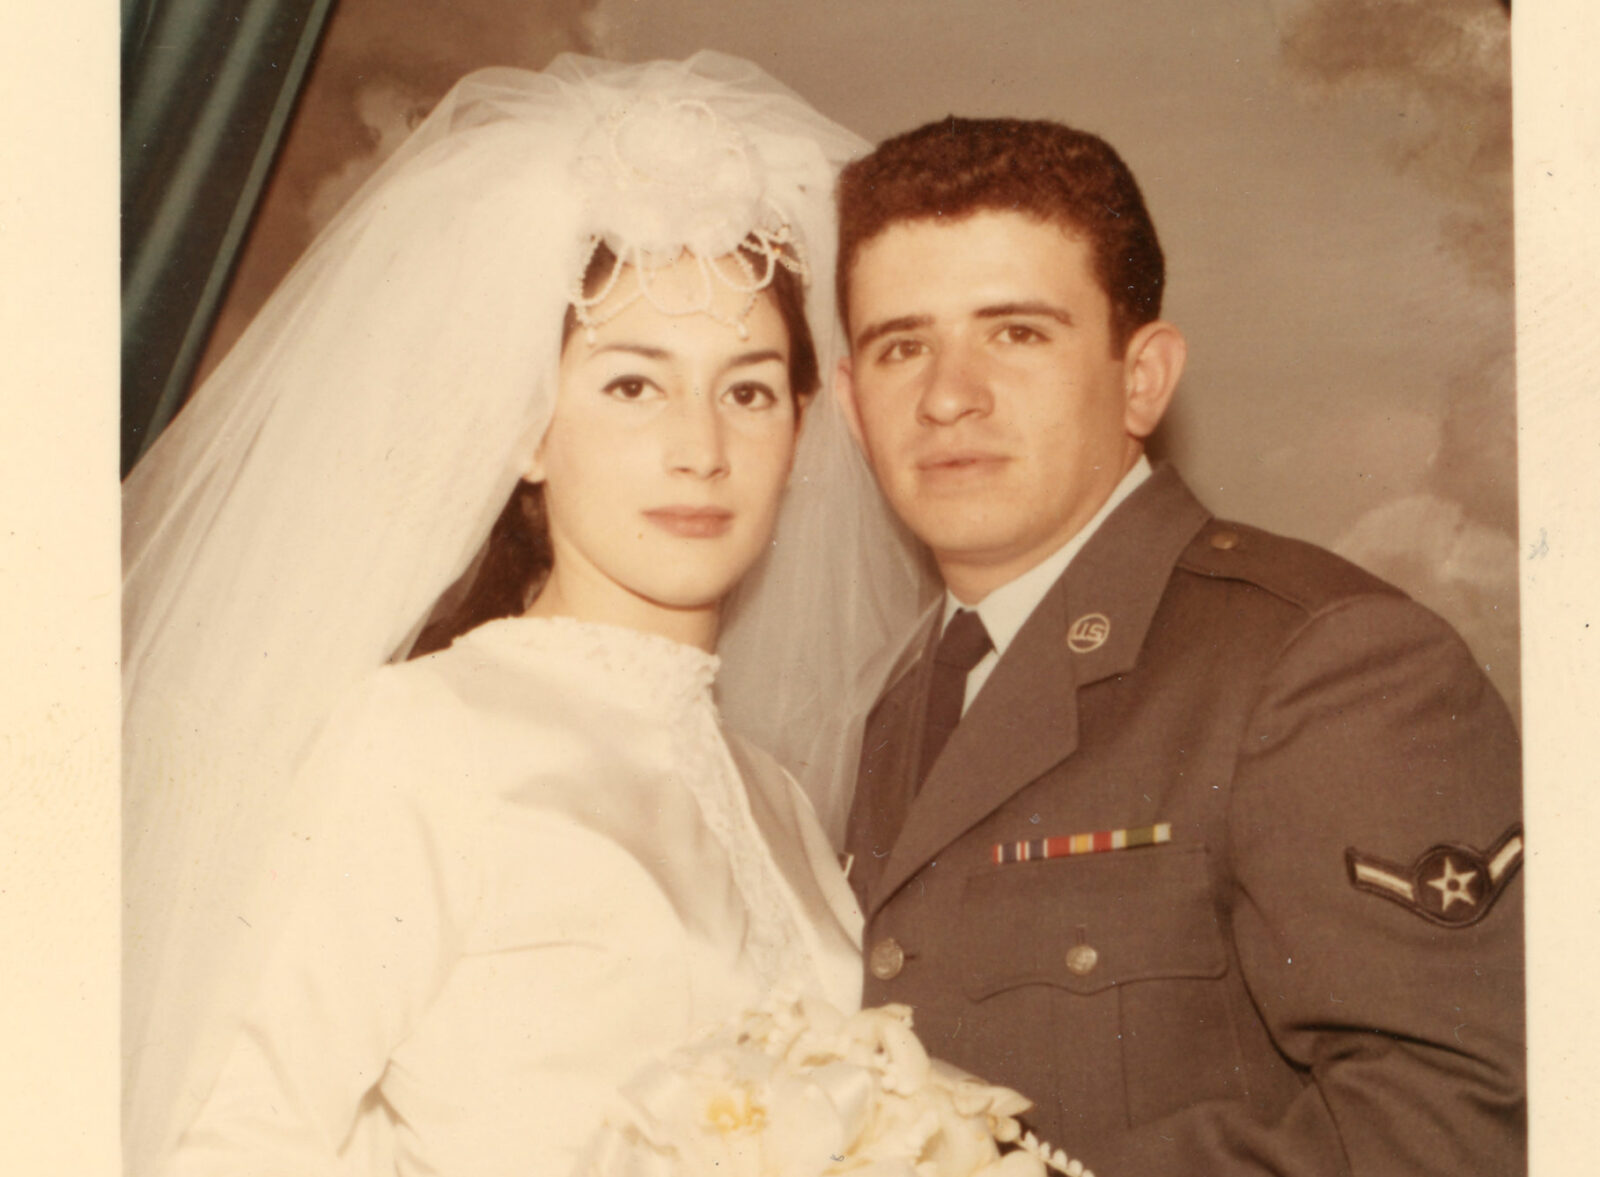 A woman with a light skin tone and dark hair in a long wedding veil and dress poses with a man with medium-light skin in a gray military uniform